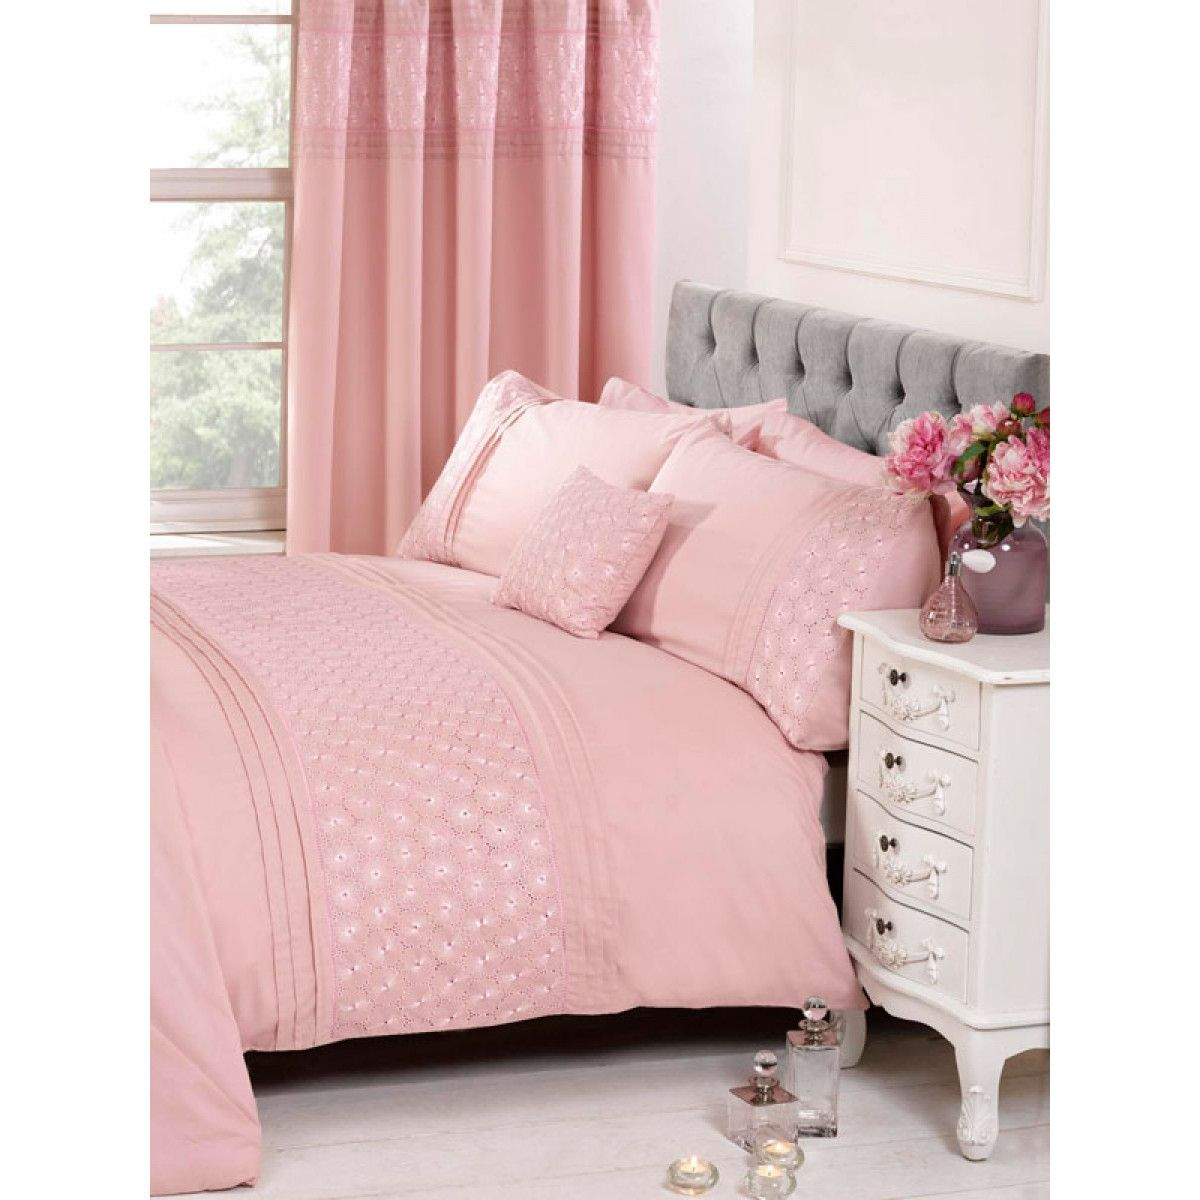 Everdean Floral Blush Pink Single Duvet Cover and